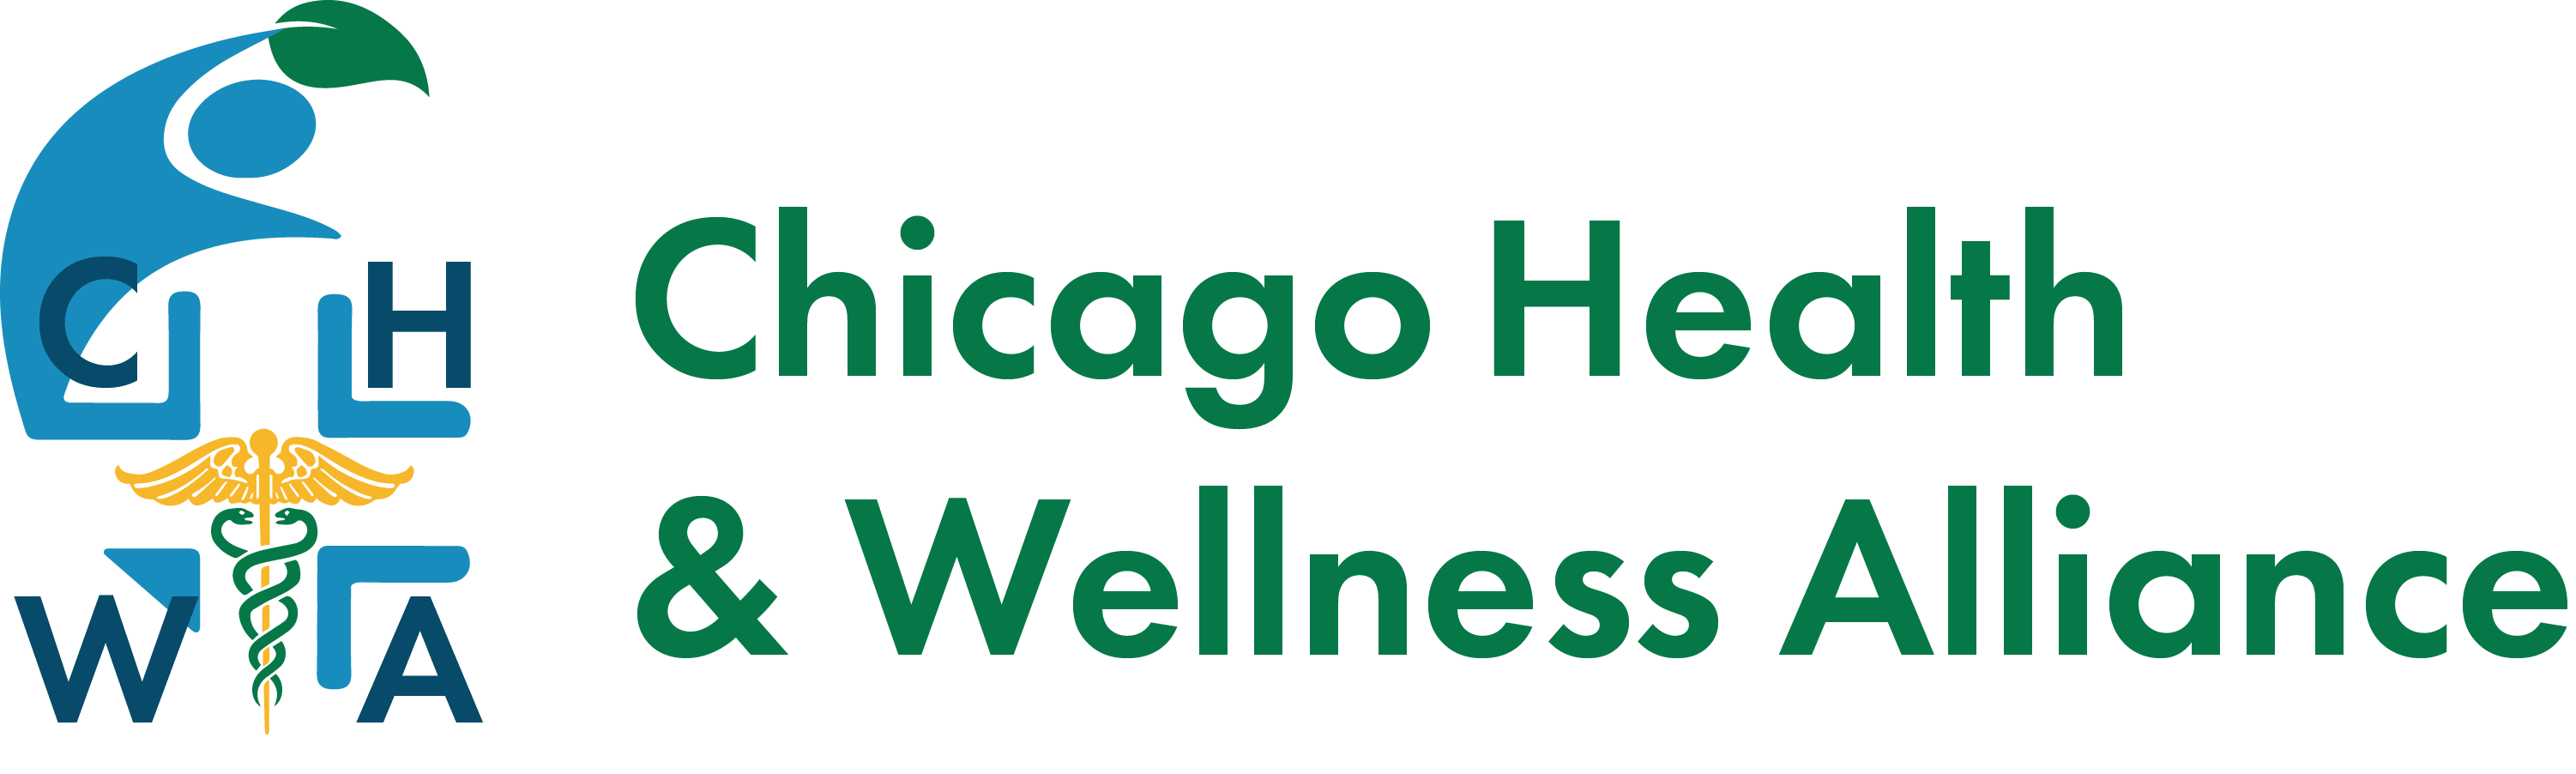 Chicago Health & Wellness Alliance